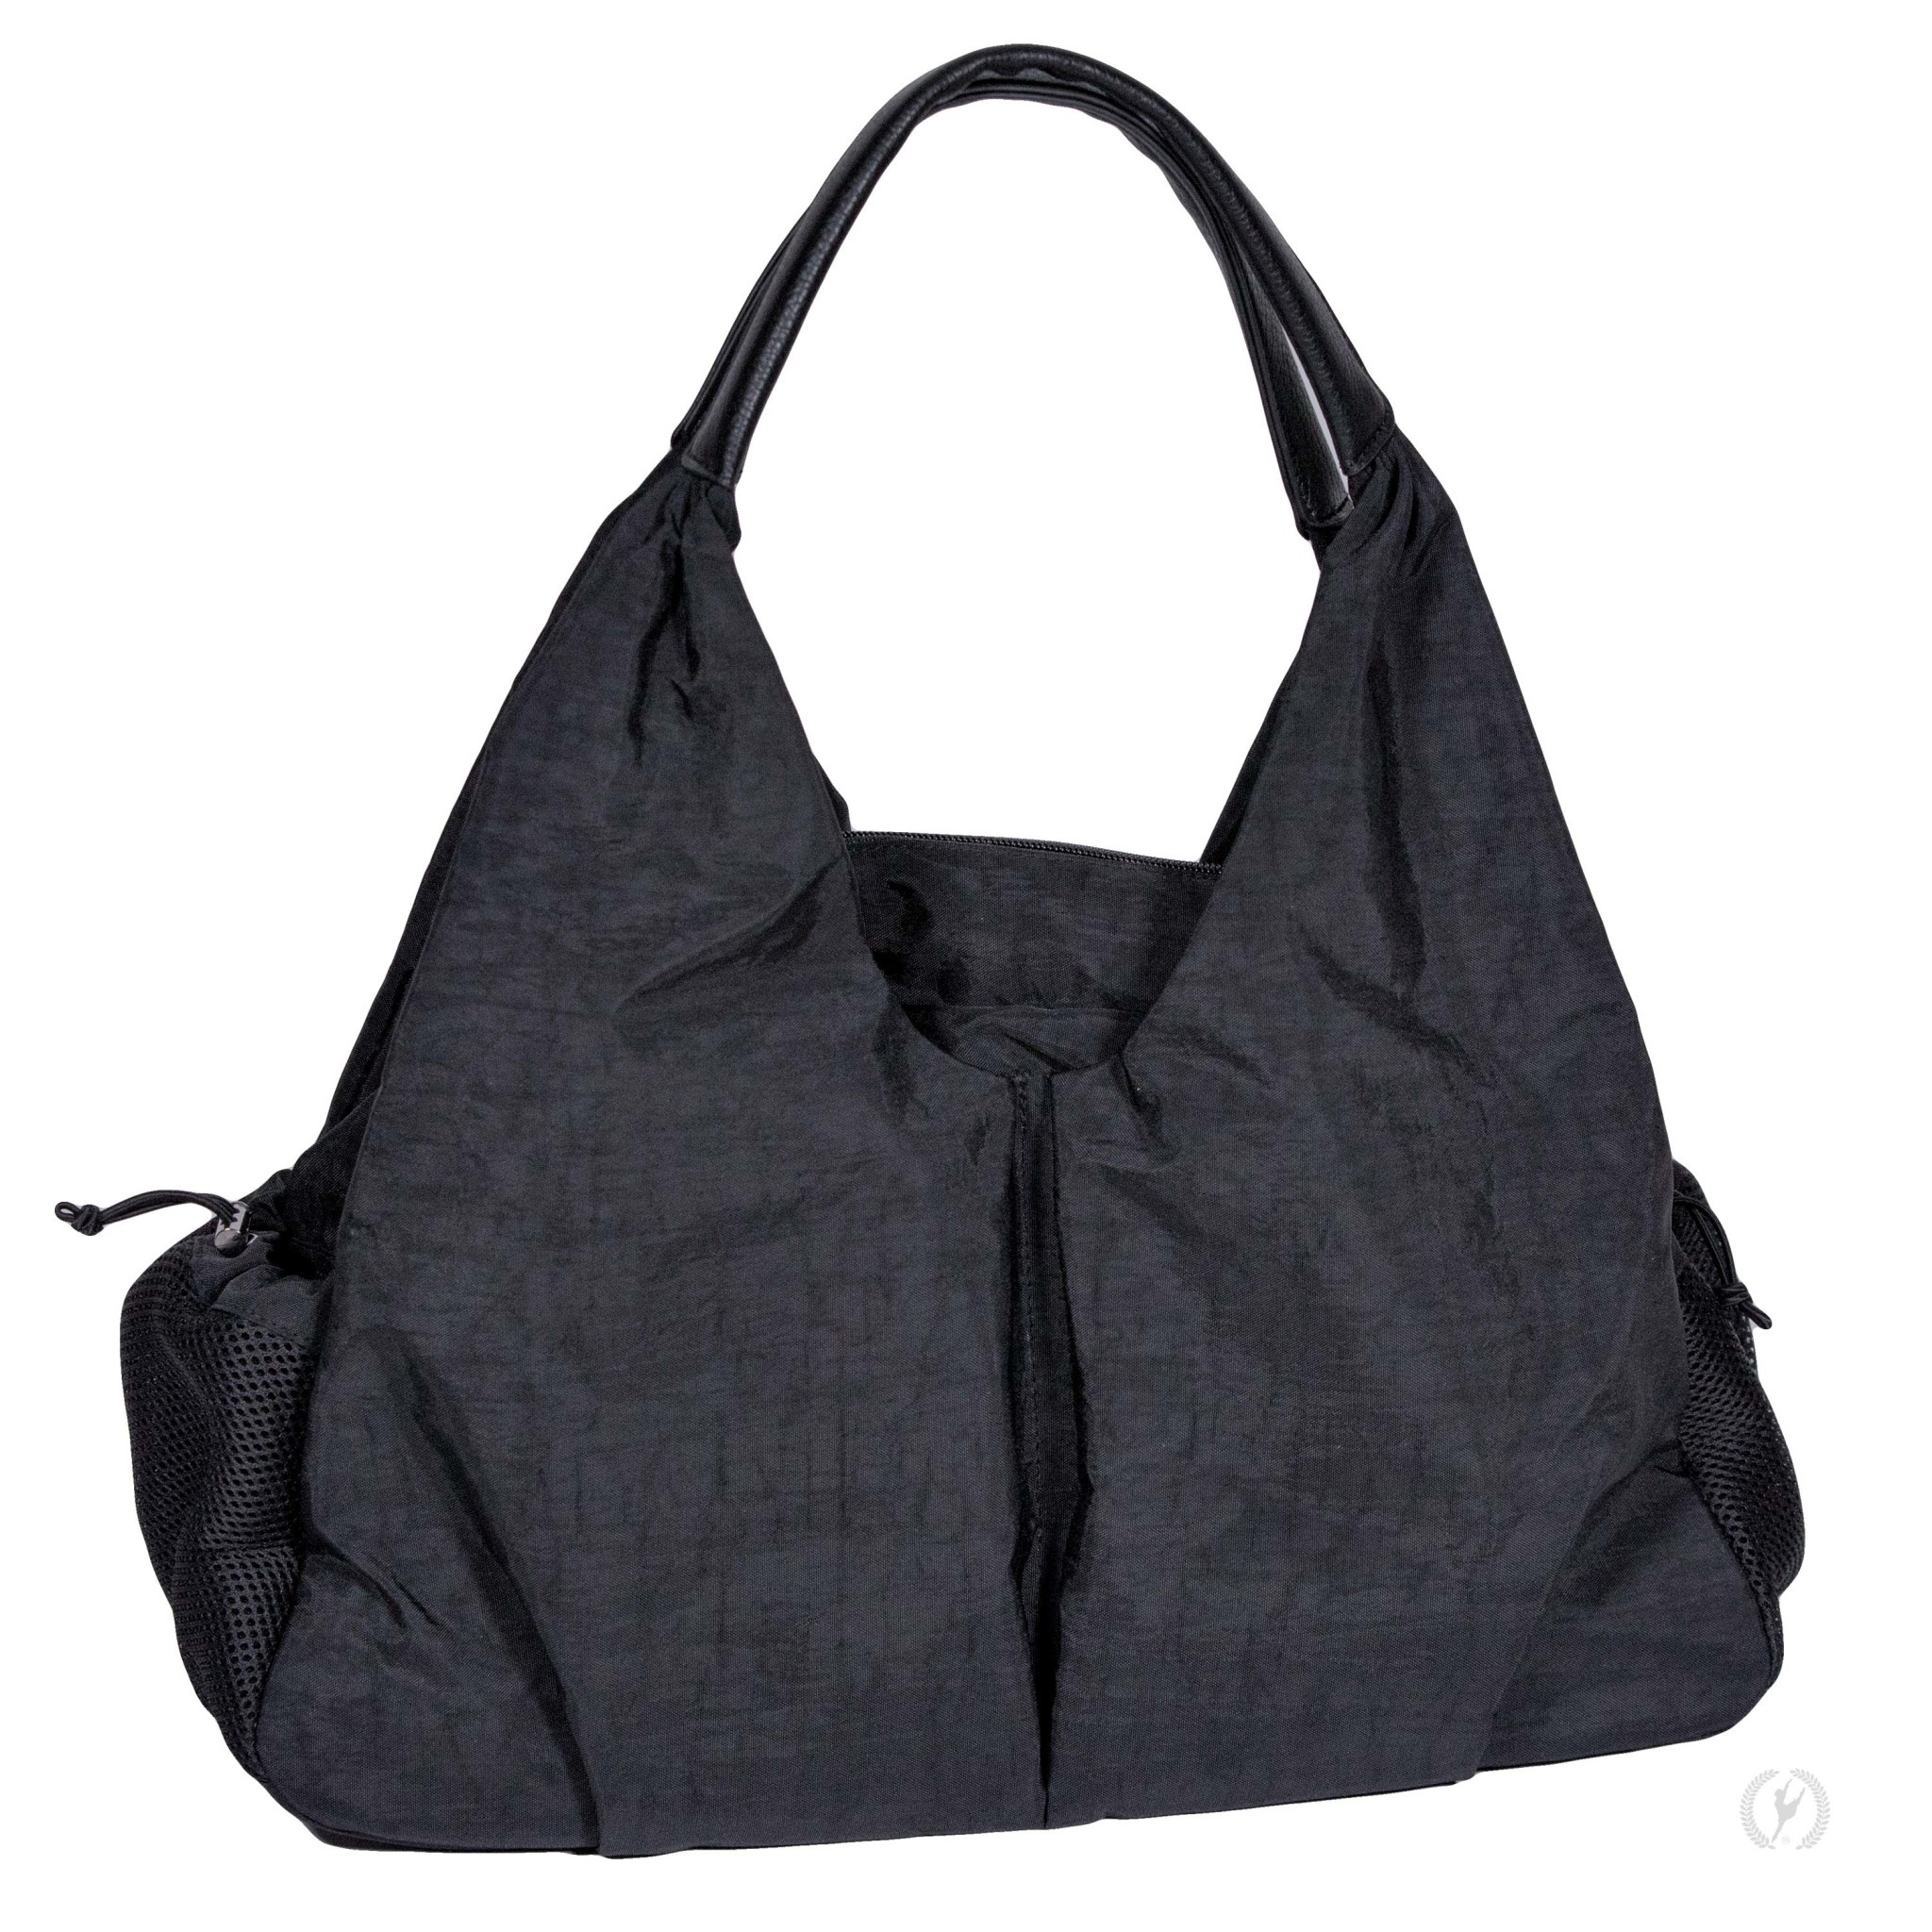 Eurotard 274 Tote-ally Chic Gym and Dance Bag